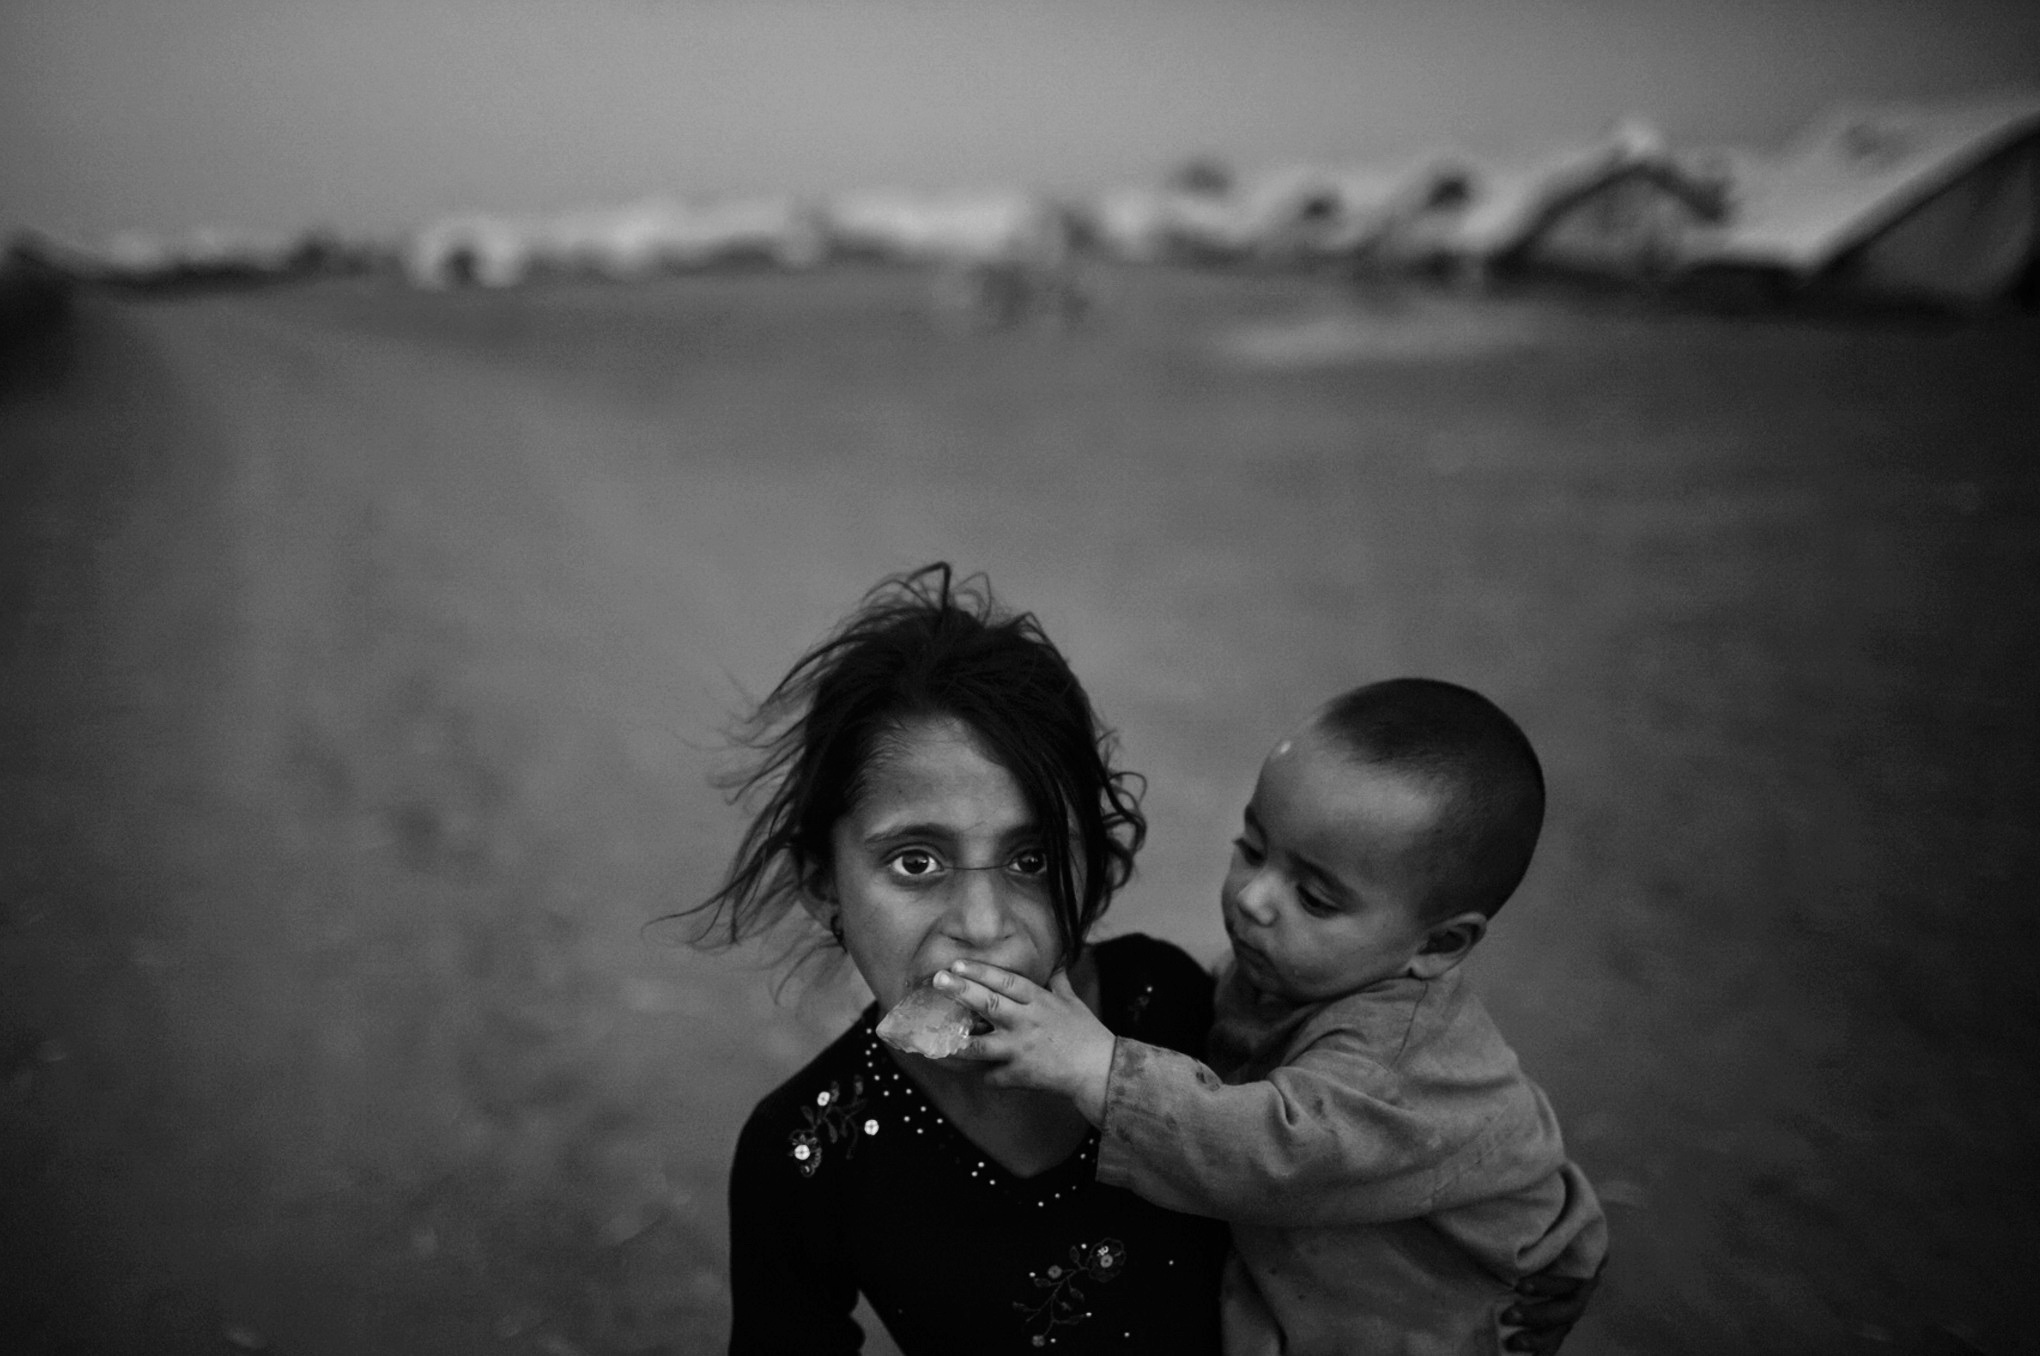 A young girl, internally displaced due to the Pakistan Army's offensive against the Taliban in Swat, looks on as her brother puts a block of ice in her mouth at the Chota Lahore relief camp in Swabi, Pakistan. May 20, 2009 © Daniel Berehulak/Getty Images